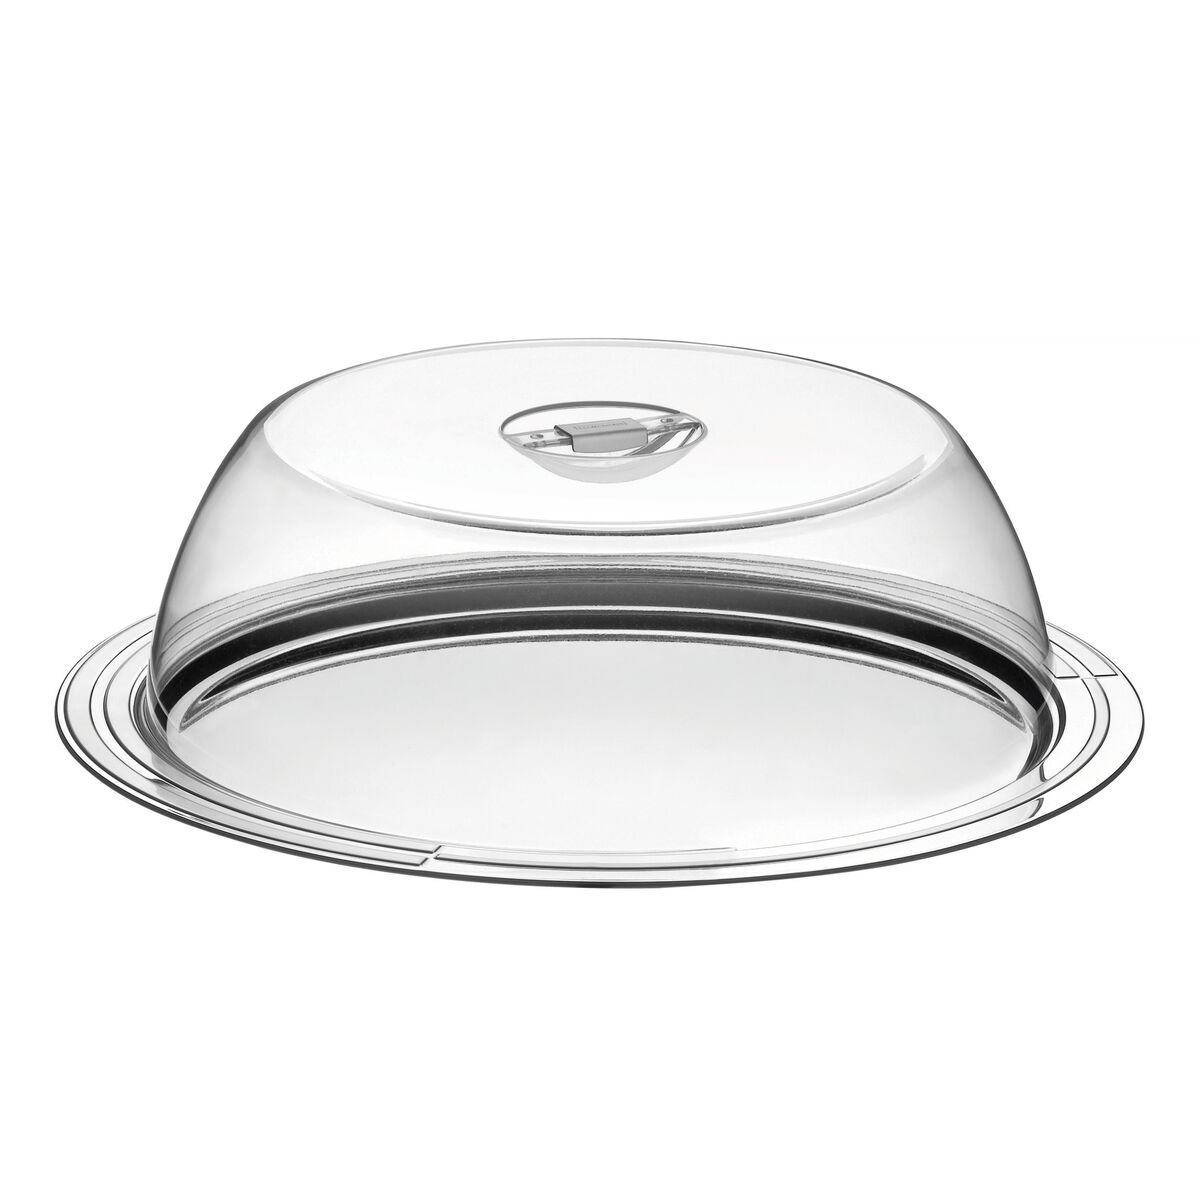 Tramontina Ciclo 33 cm stainless steel cake dish with dome cover